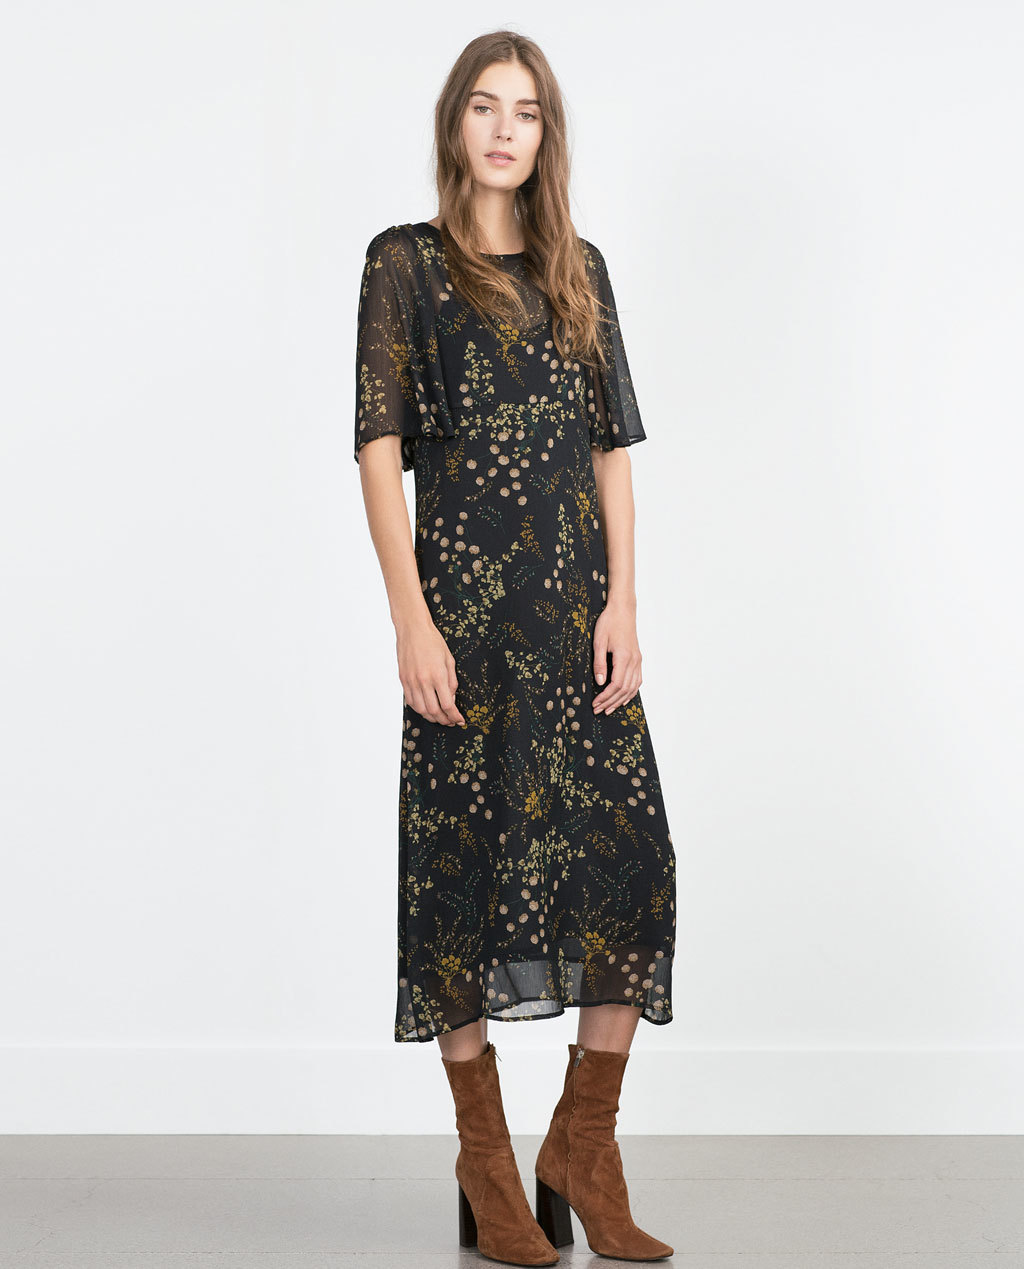 Printed Dress - style: shift; length: calf length; neckline: round neck; secondary colour: mustard; predominant colour: black; occasions: casual, creative work; fit: soft a-line; fibres: polyester/polyamide - 100%; sleeve length: half sleeve; sleeve style: standard; texture group: sheer fabrics/chiffon/organza etc.; pattern type: fabric; pattern size: standard; pattern: florals; multicoloured: multicoloured; season: a/w 2015; trends: folky 70s; wardrobe: highlight